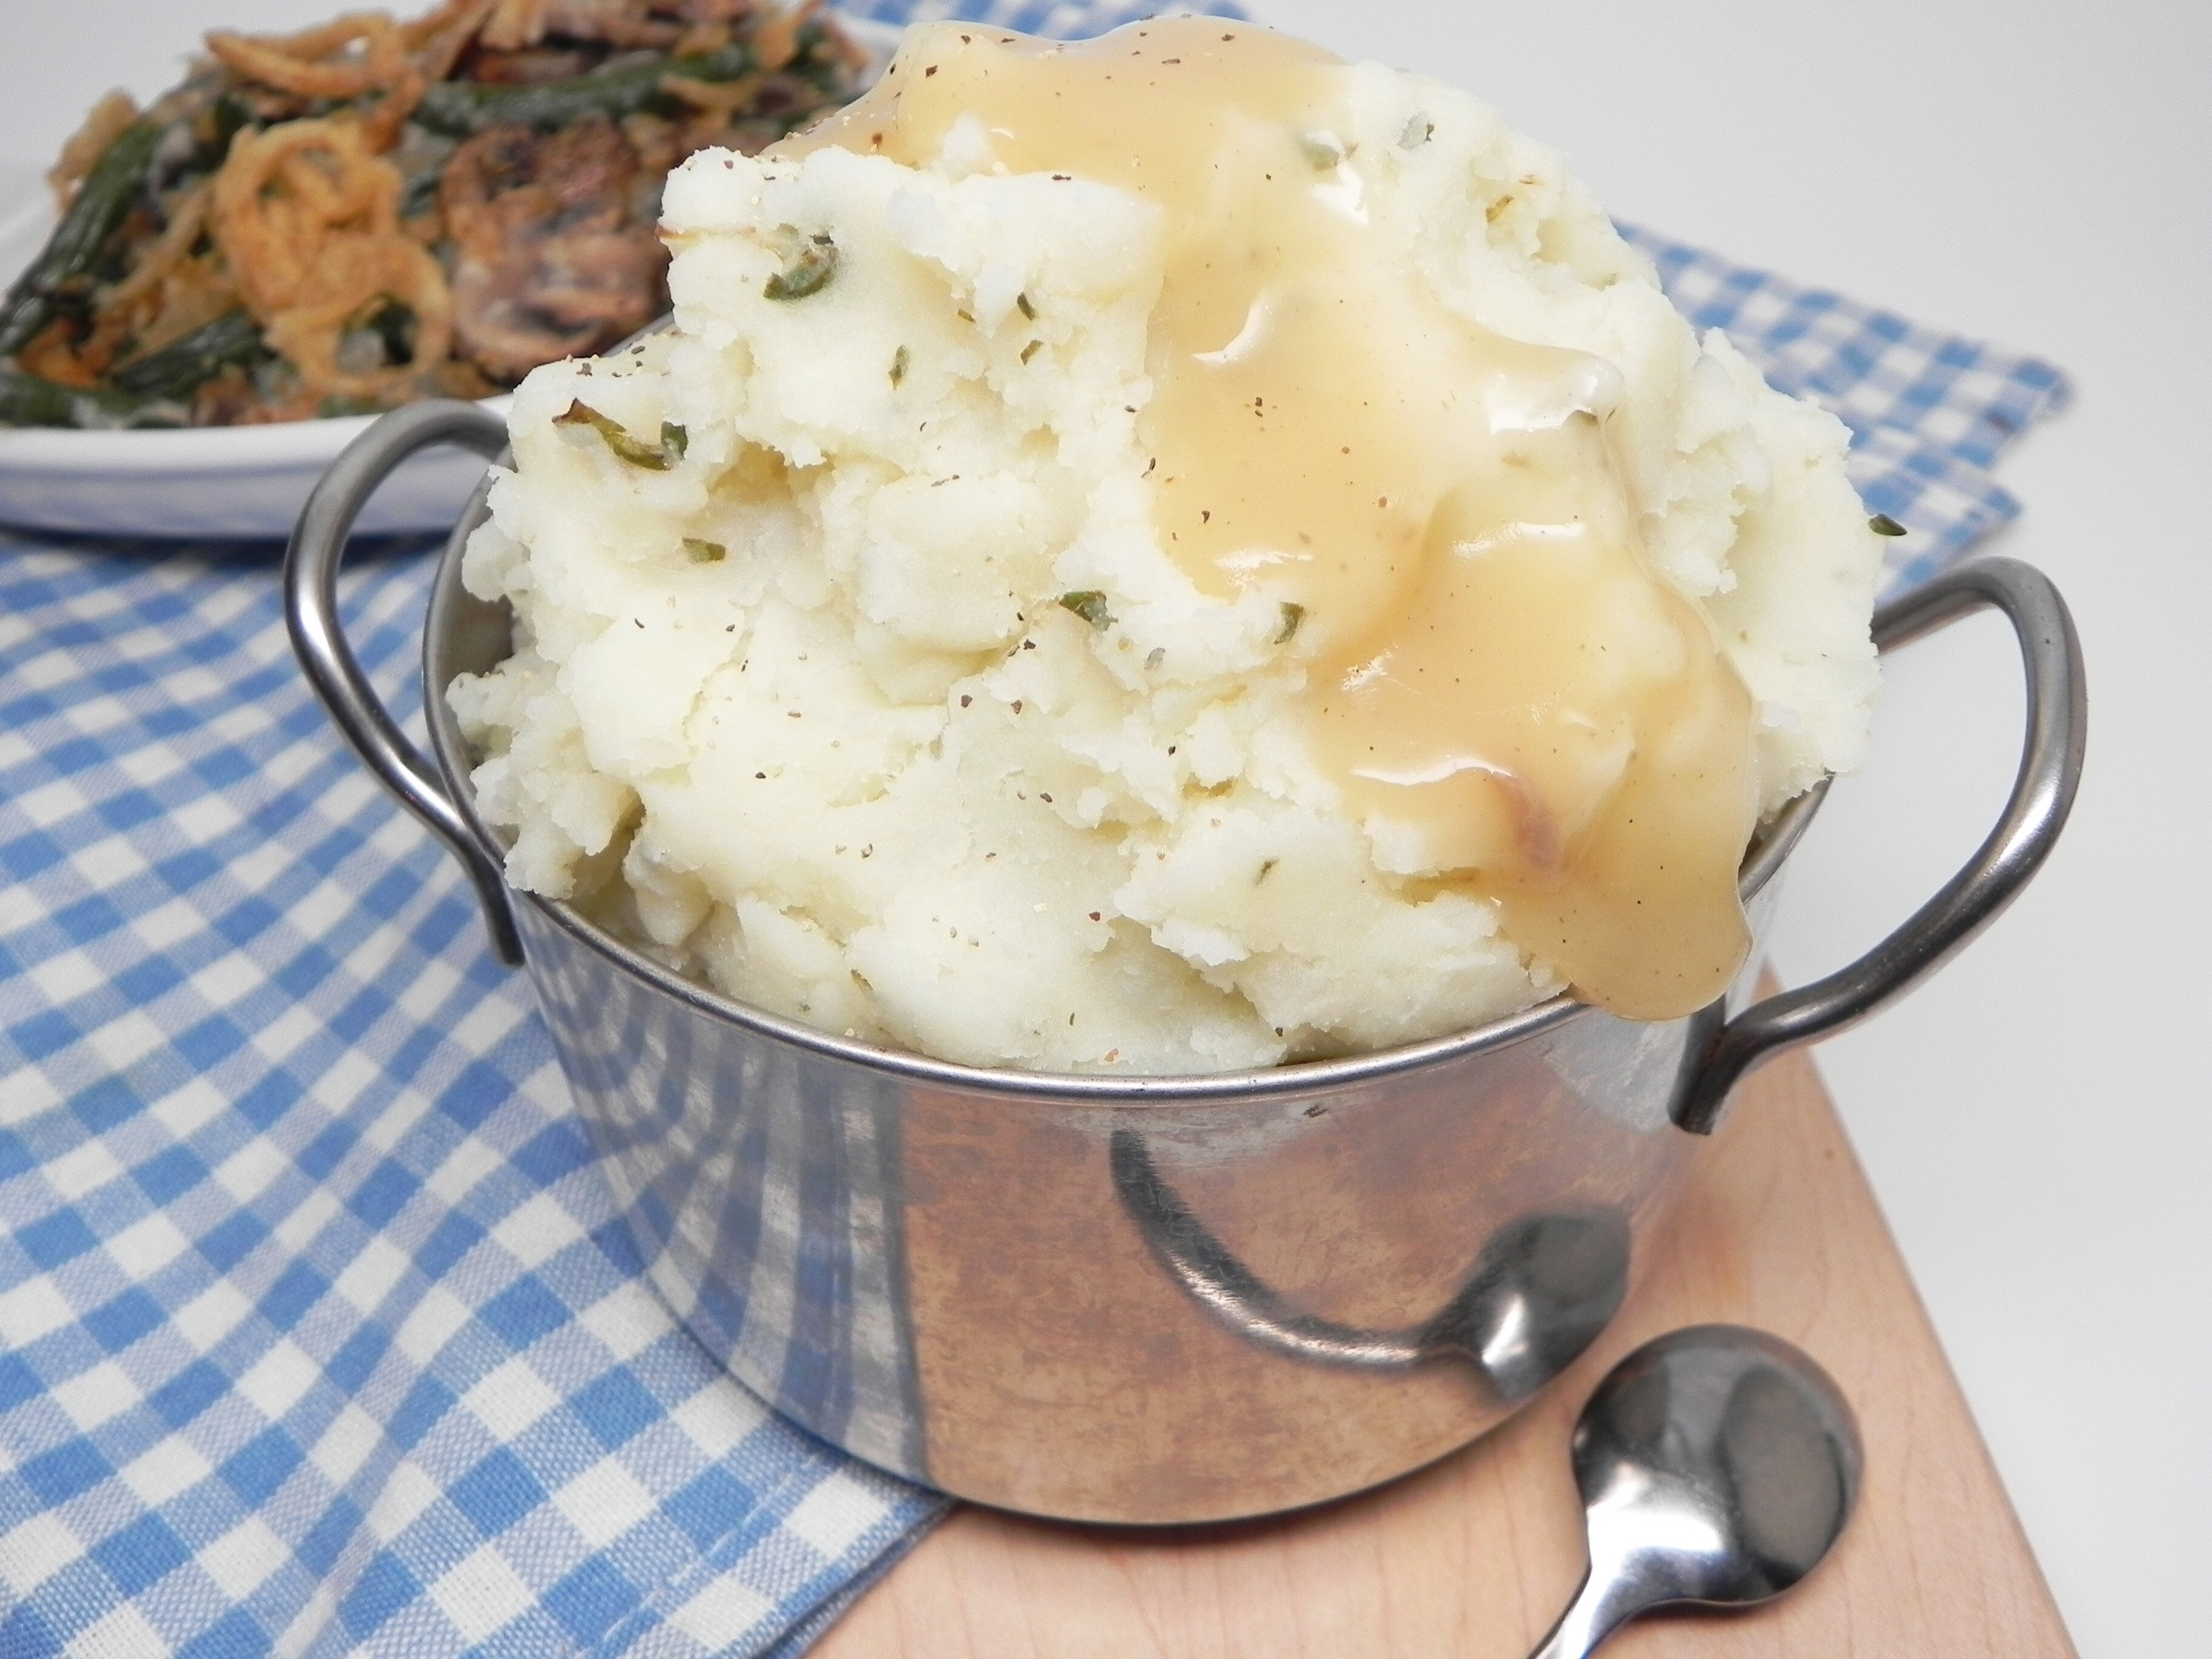 mashed potatoes with herb butter